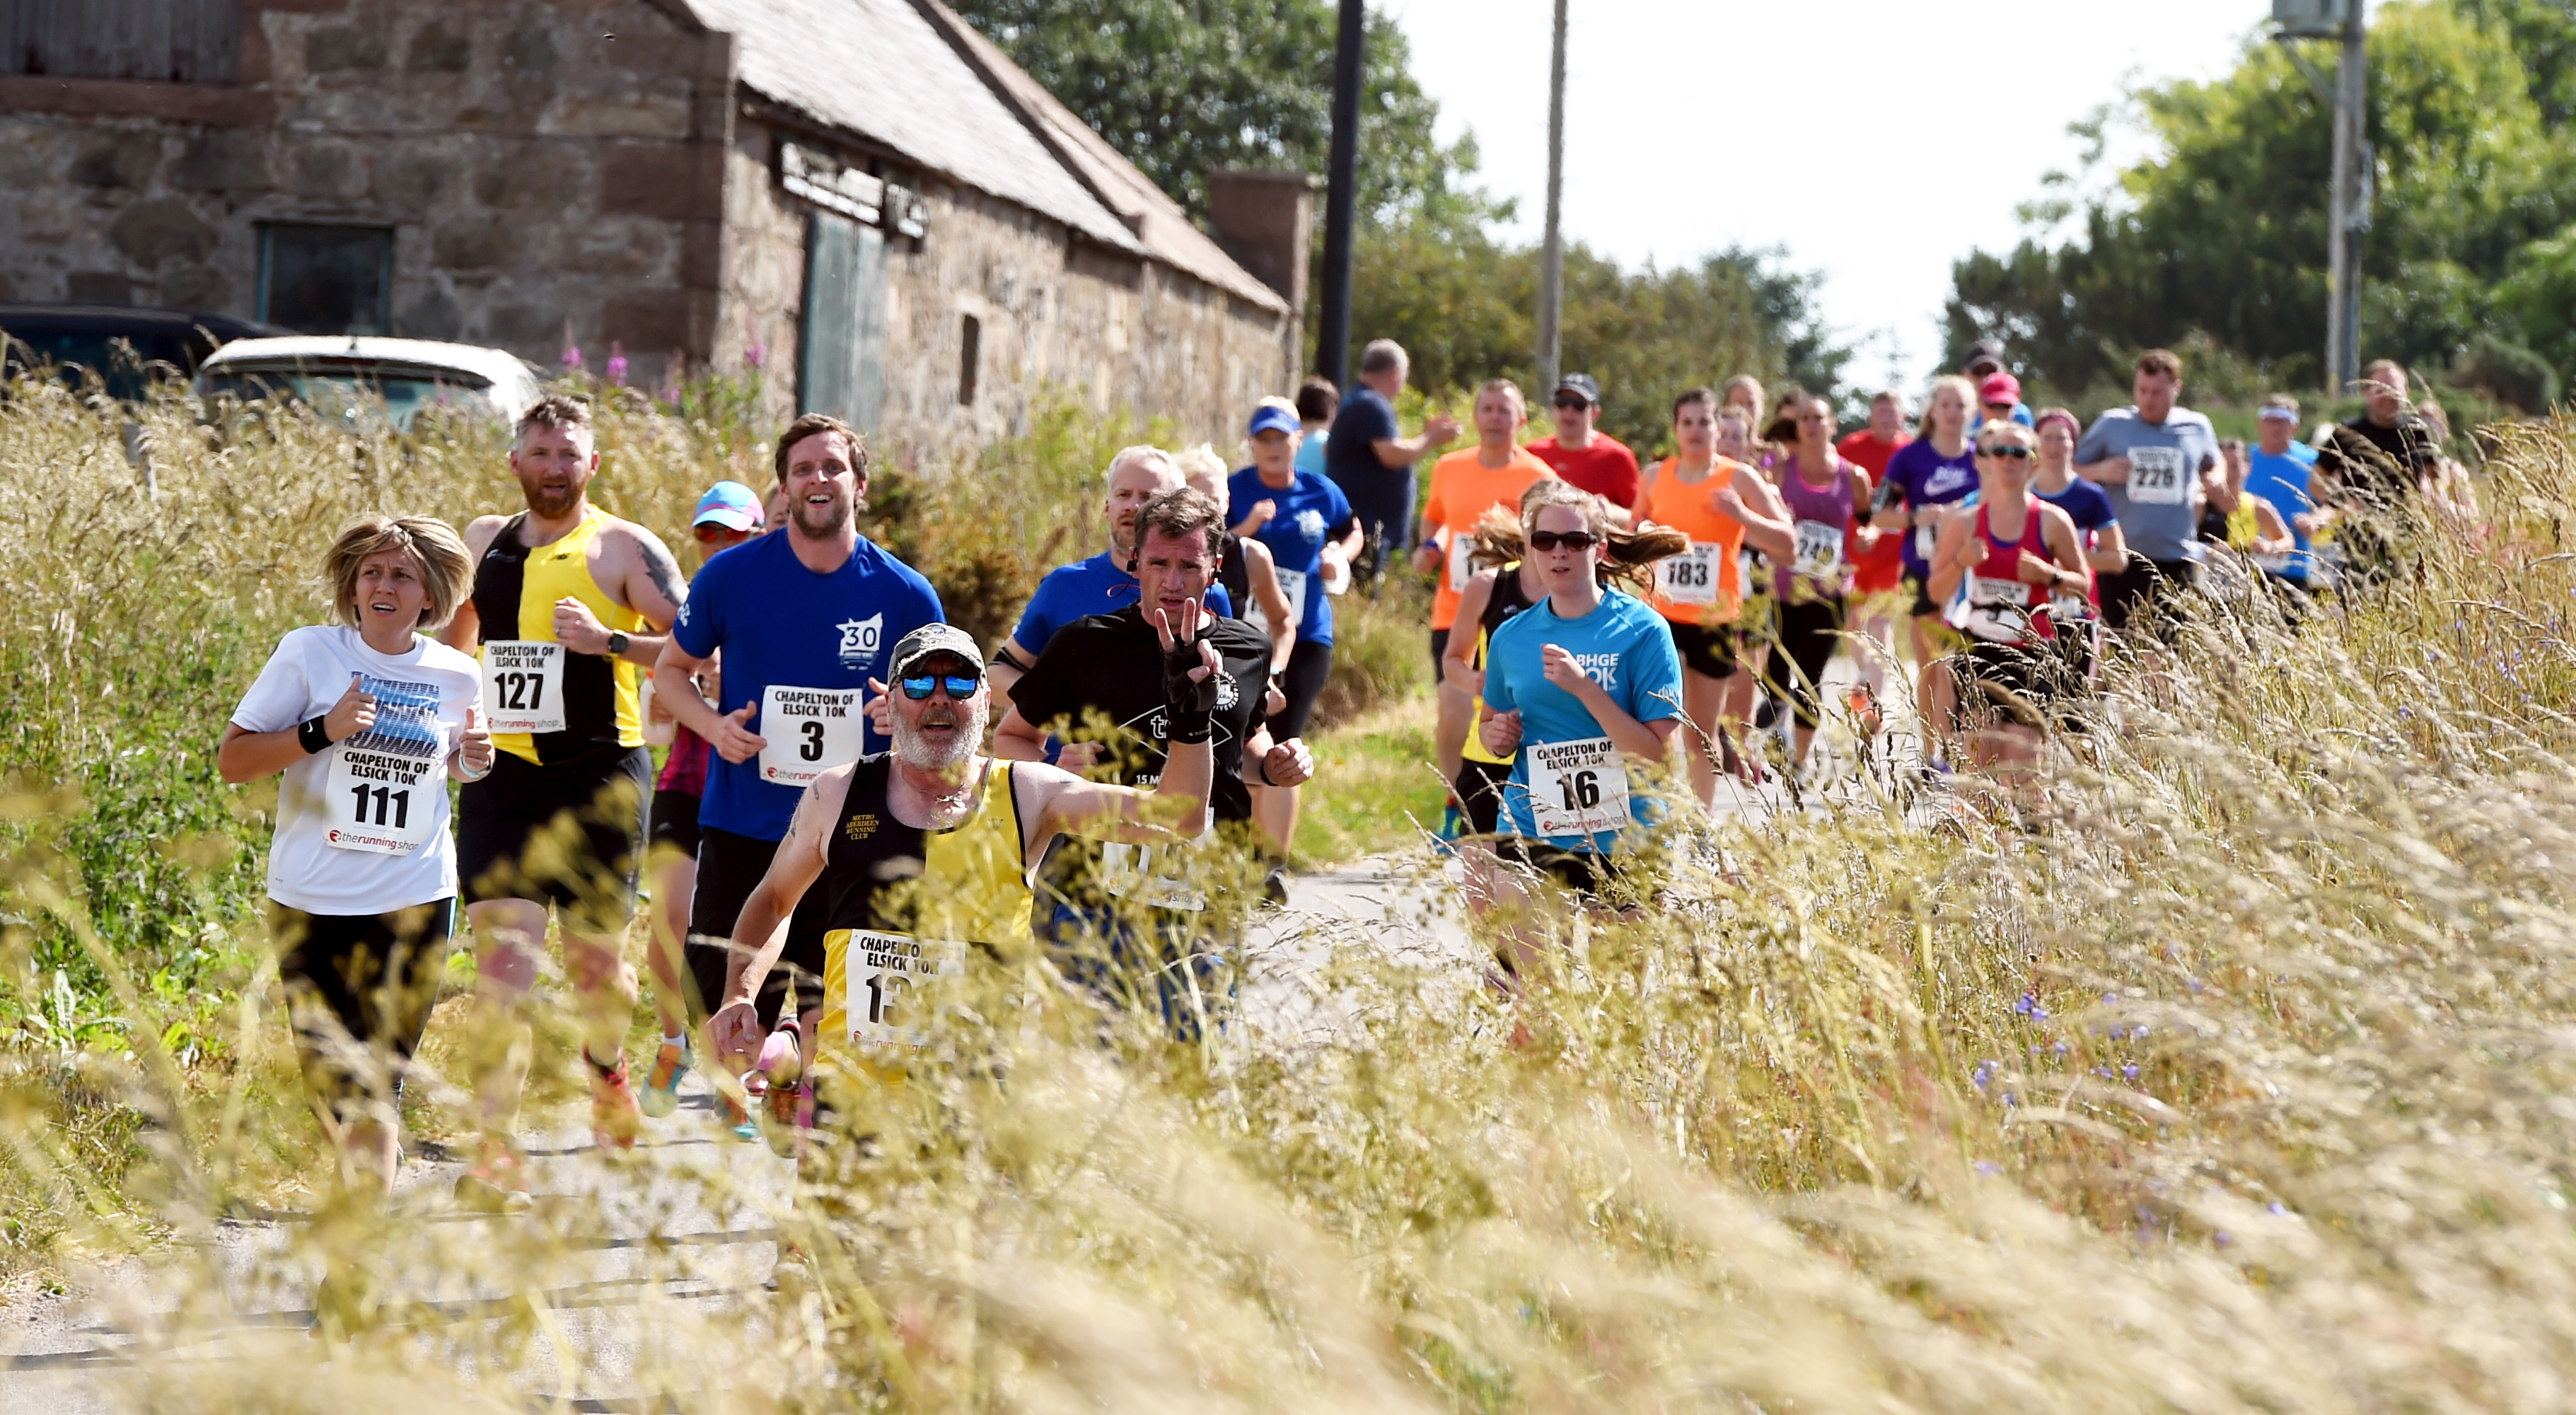 The first Chapelton 10K race on the Elsick estate